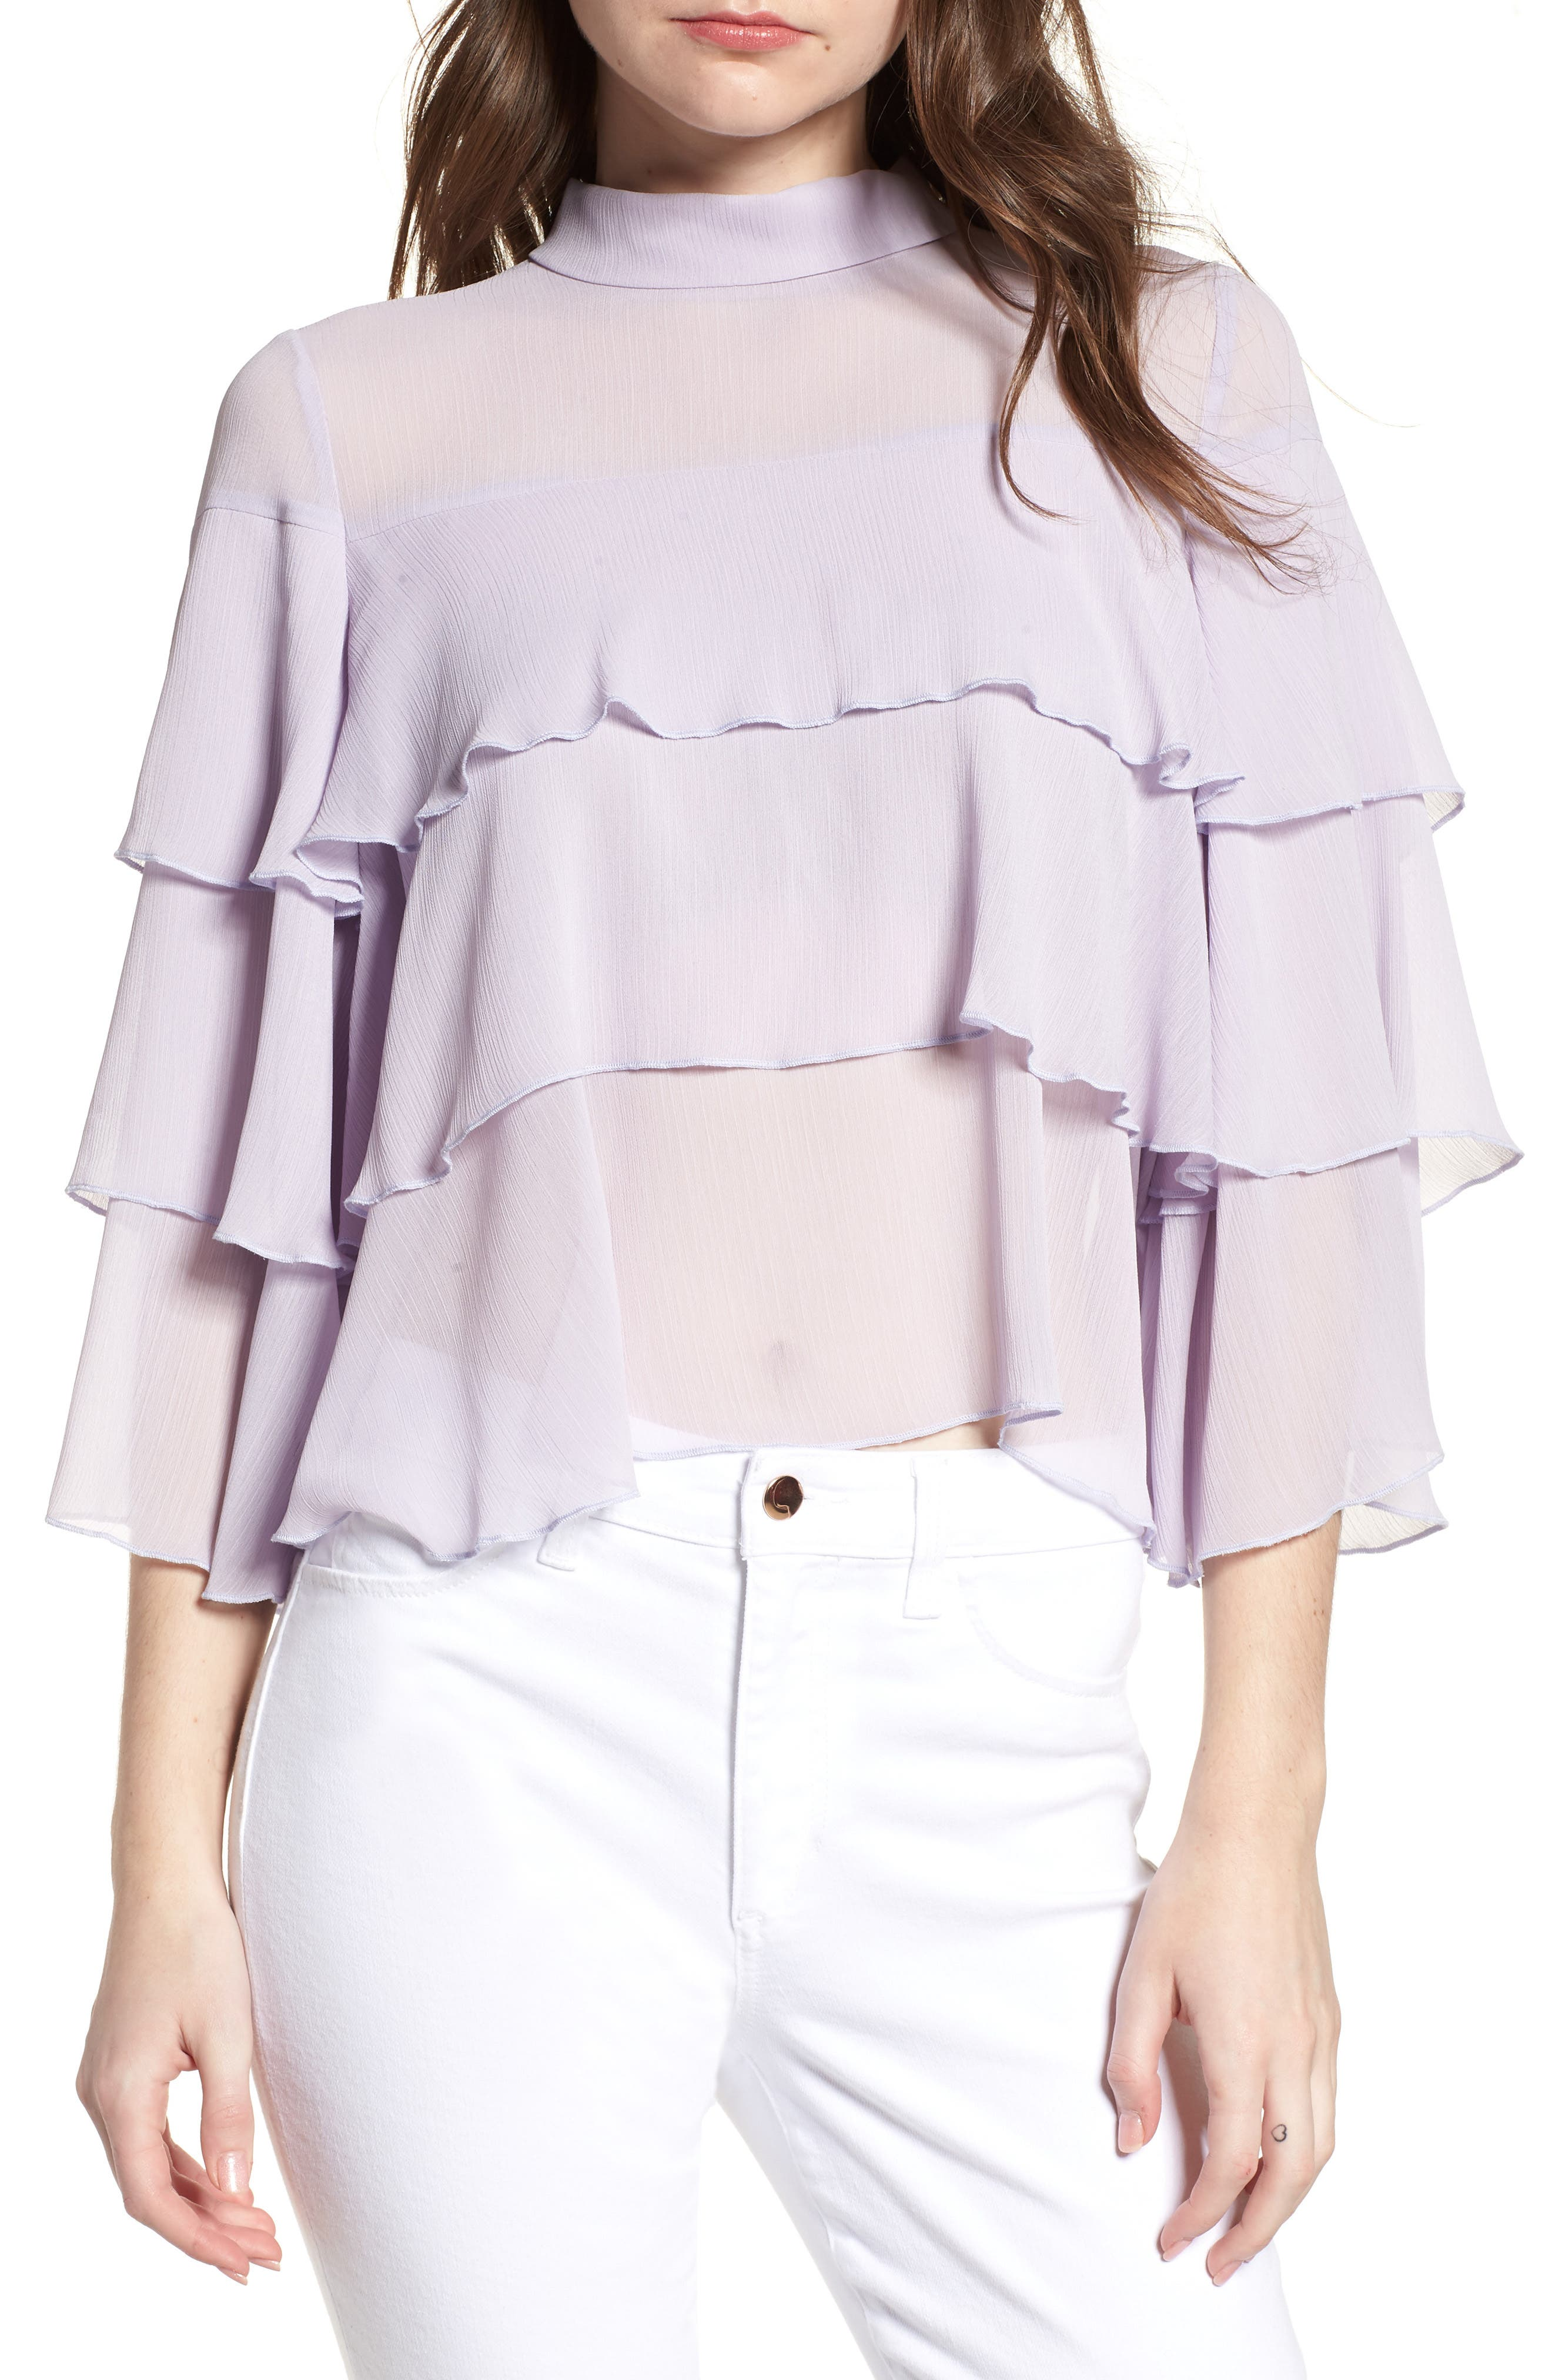 Bishop + Young Tiered Ruffle Blouse,                             Main thumbnail 1, color,                             LILAC